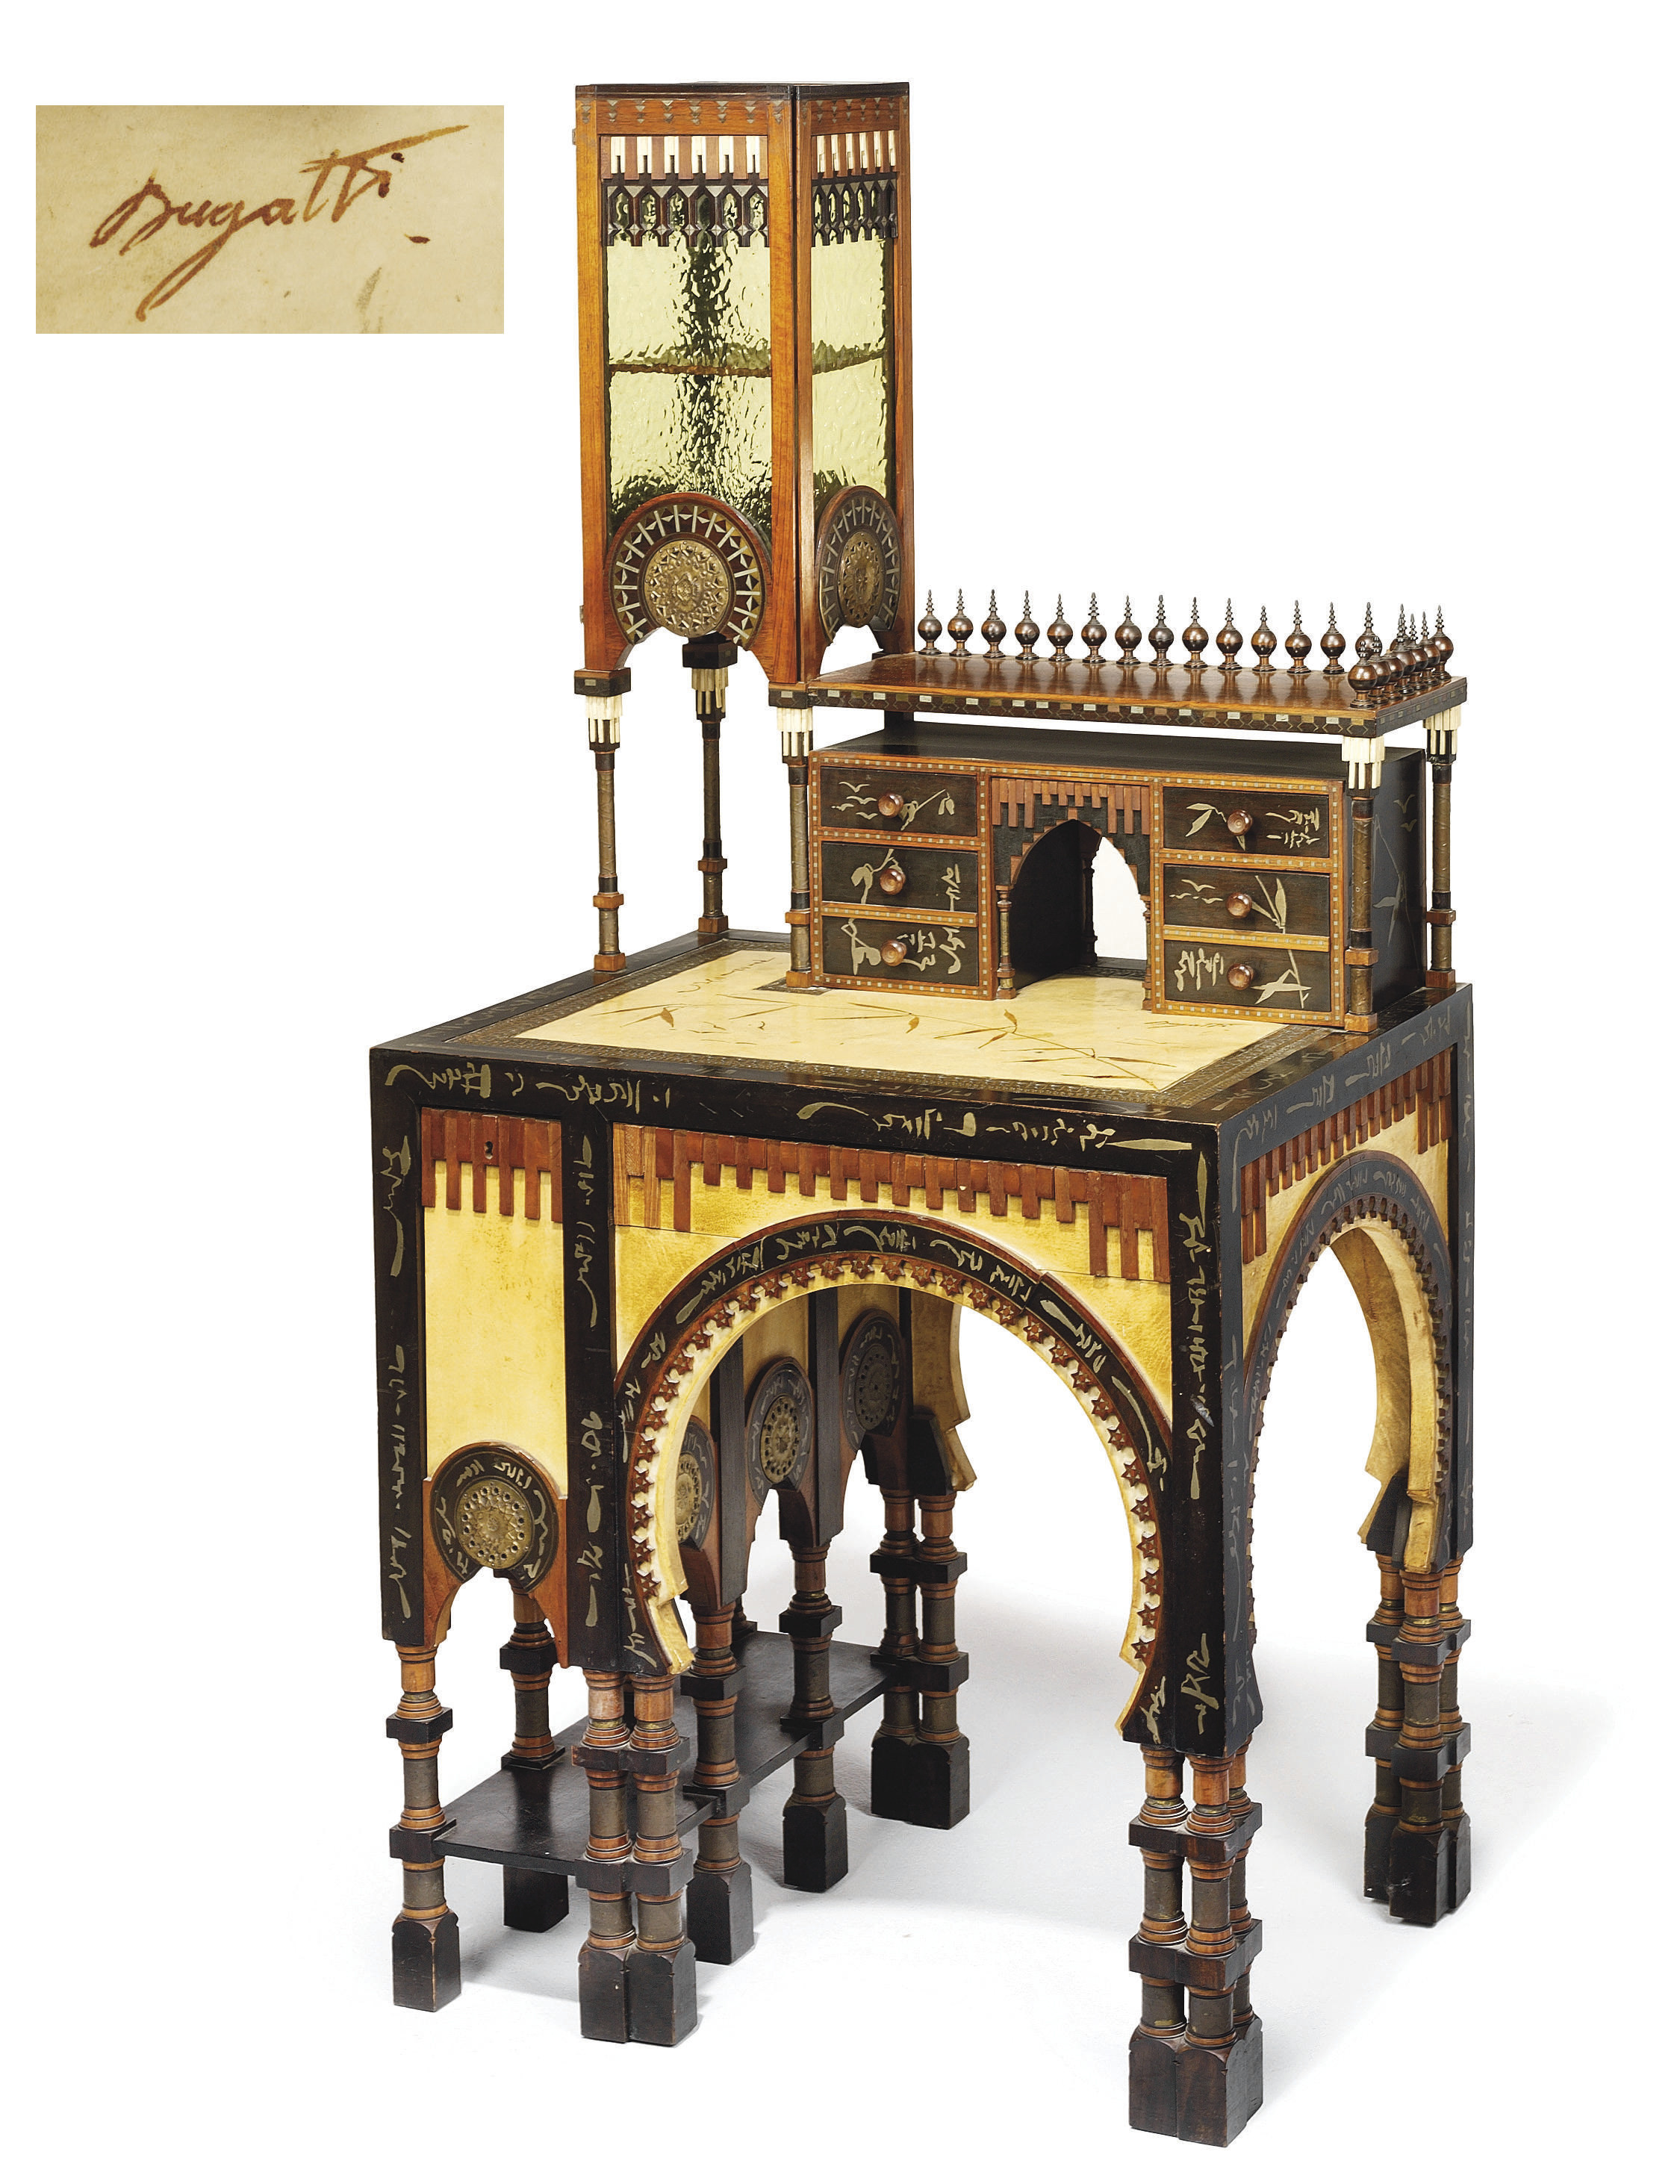 carlo bugatti 1856 1940 mosqu e bureau circa 1902 christie 39 s. Black Bedroom Furniture Sets. Home Design Ideas